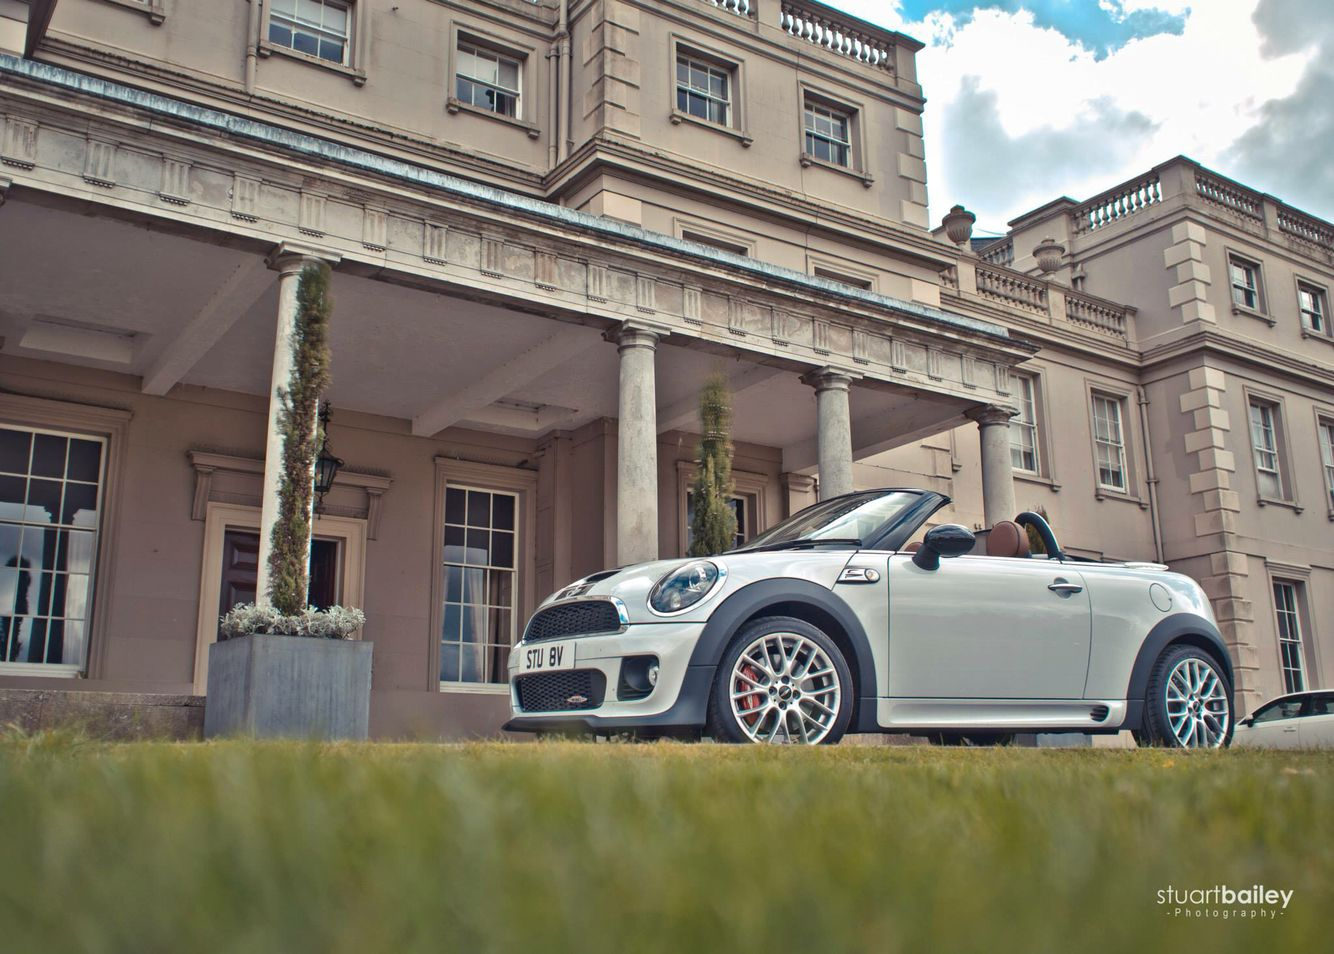 Dallas texas french chateau home photograph 4540 - My Mini Jcw Roadster Outside Wokefield Park Mansion House In Reading Uk